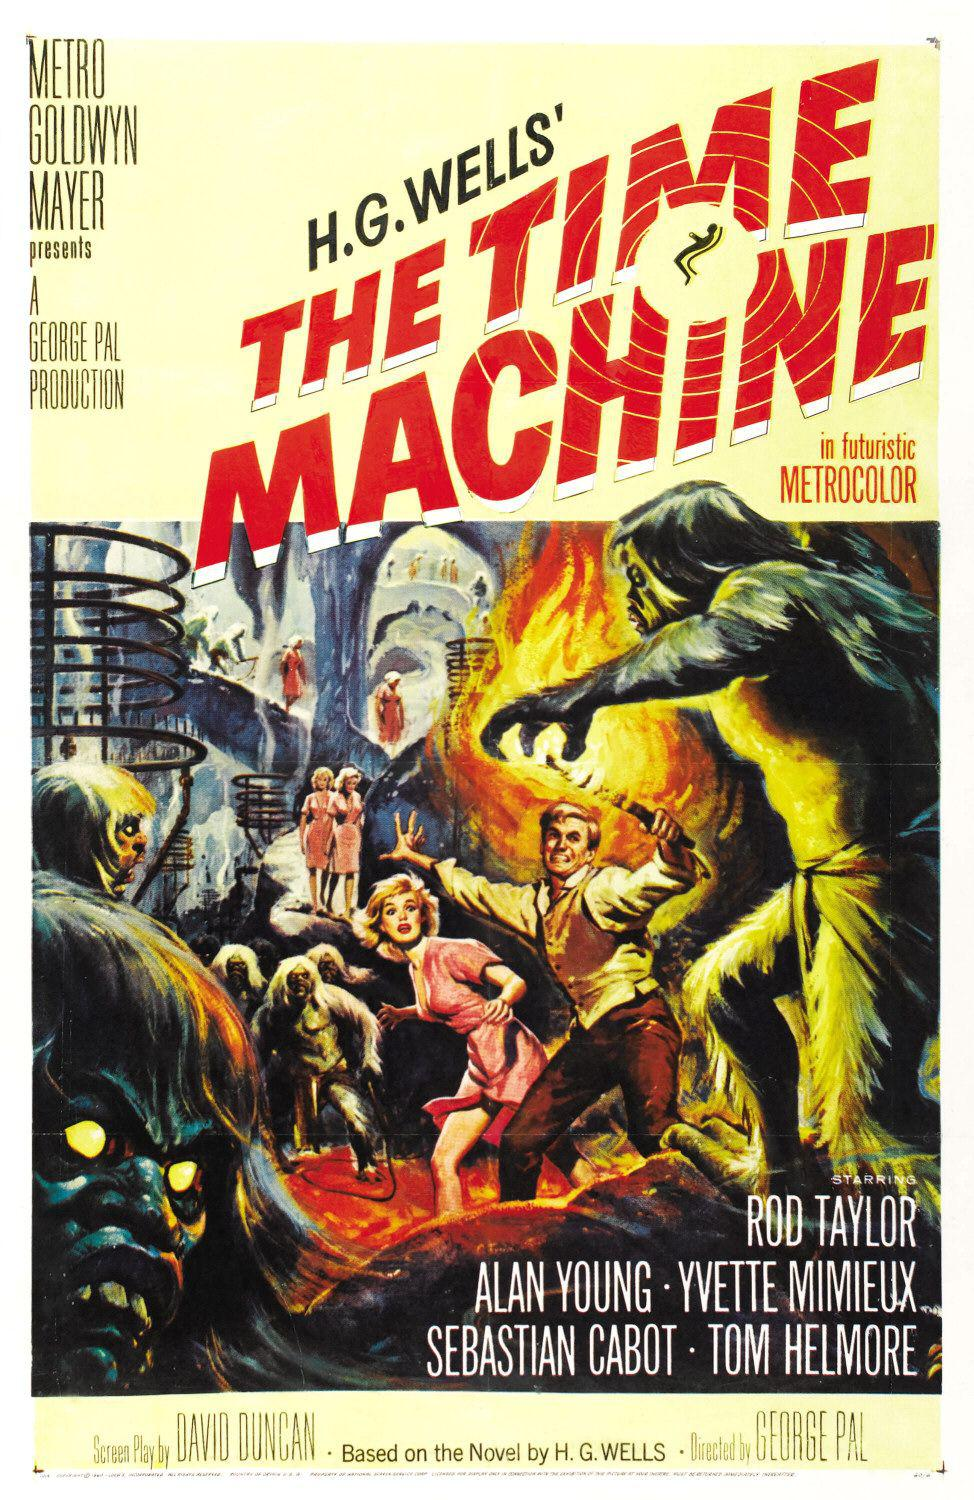 Time Machine - film del 1960 - old scifi movie poster - H.G.Wells - Rod Taylor - Alan Young - Yvette Mimieux - Sebastian Cabot - Tom Helmore